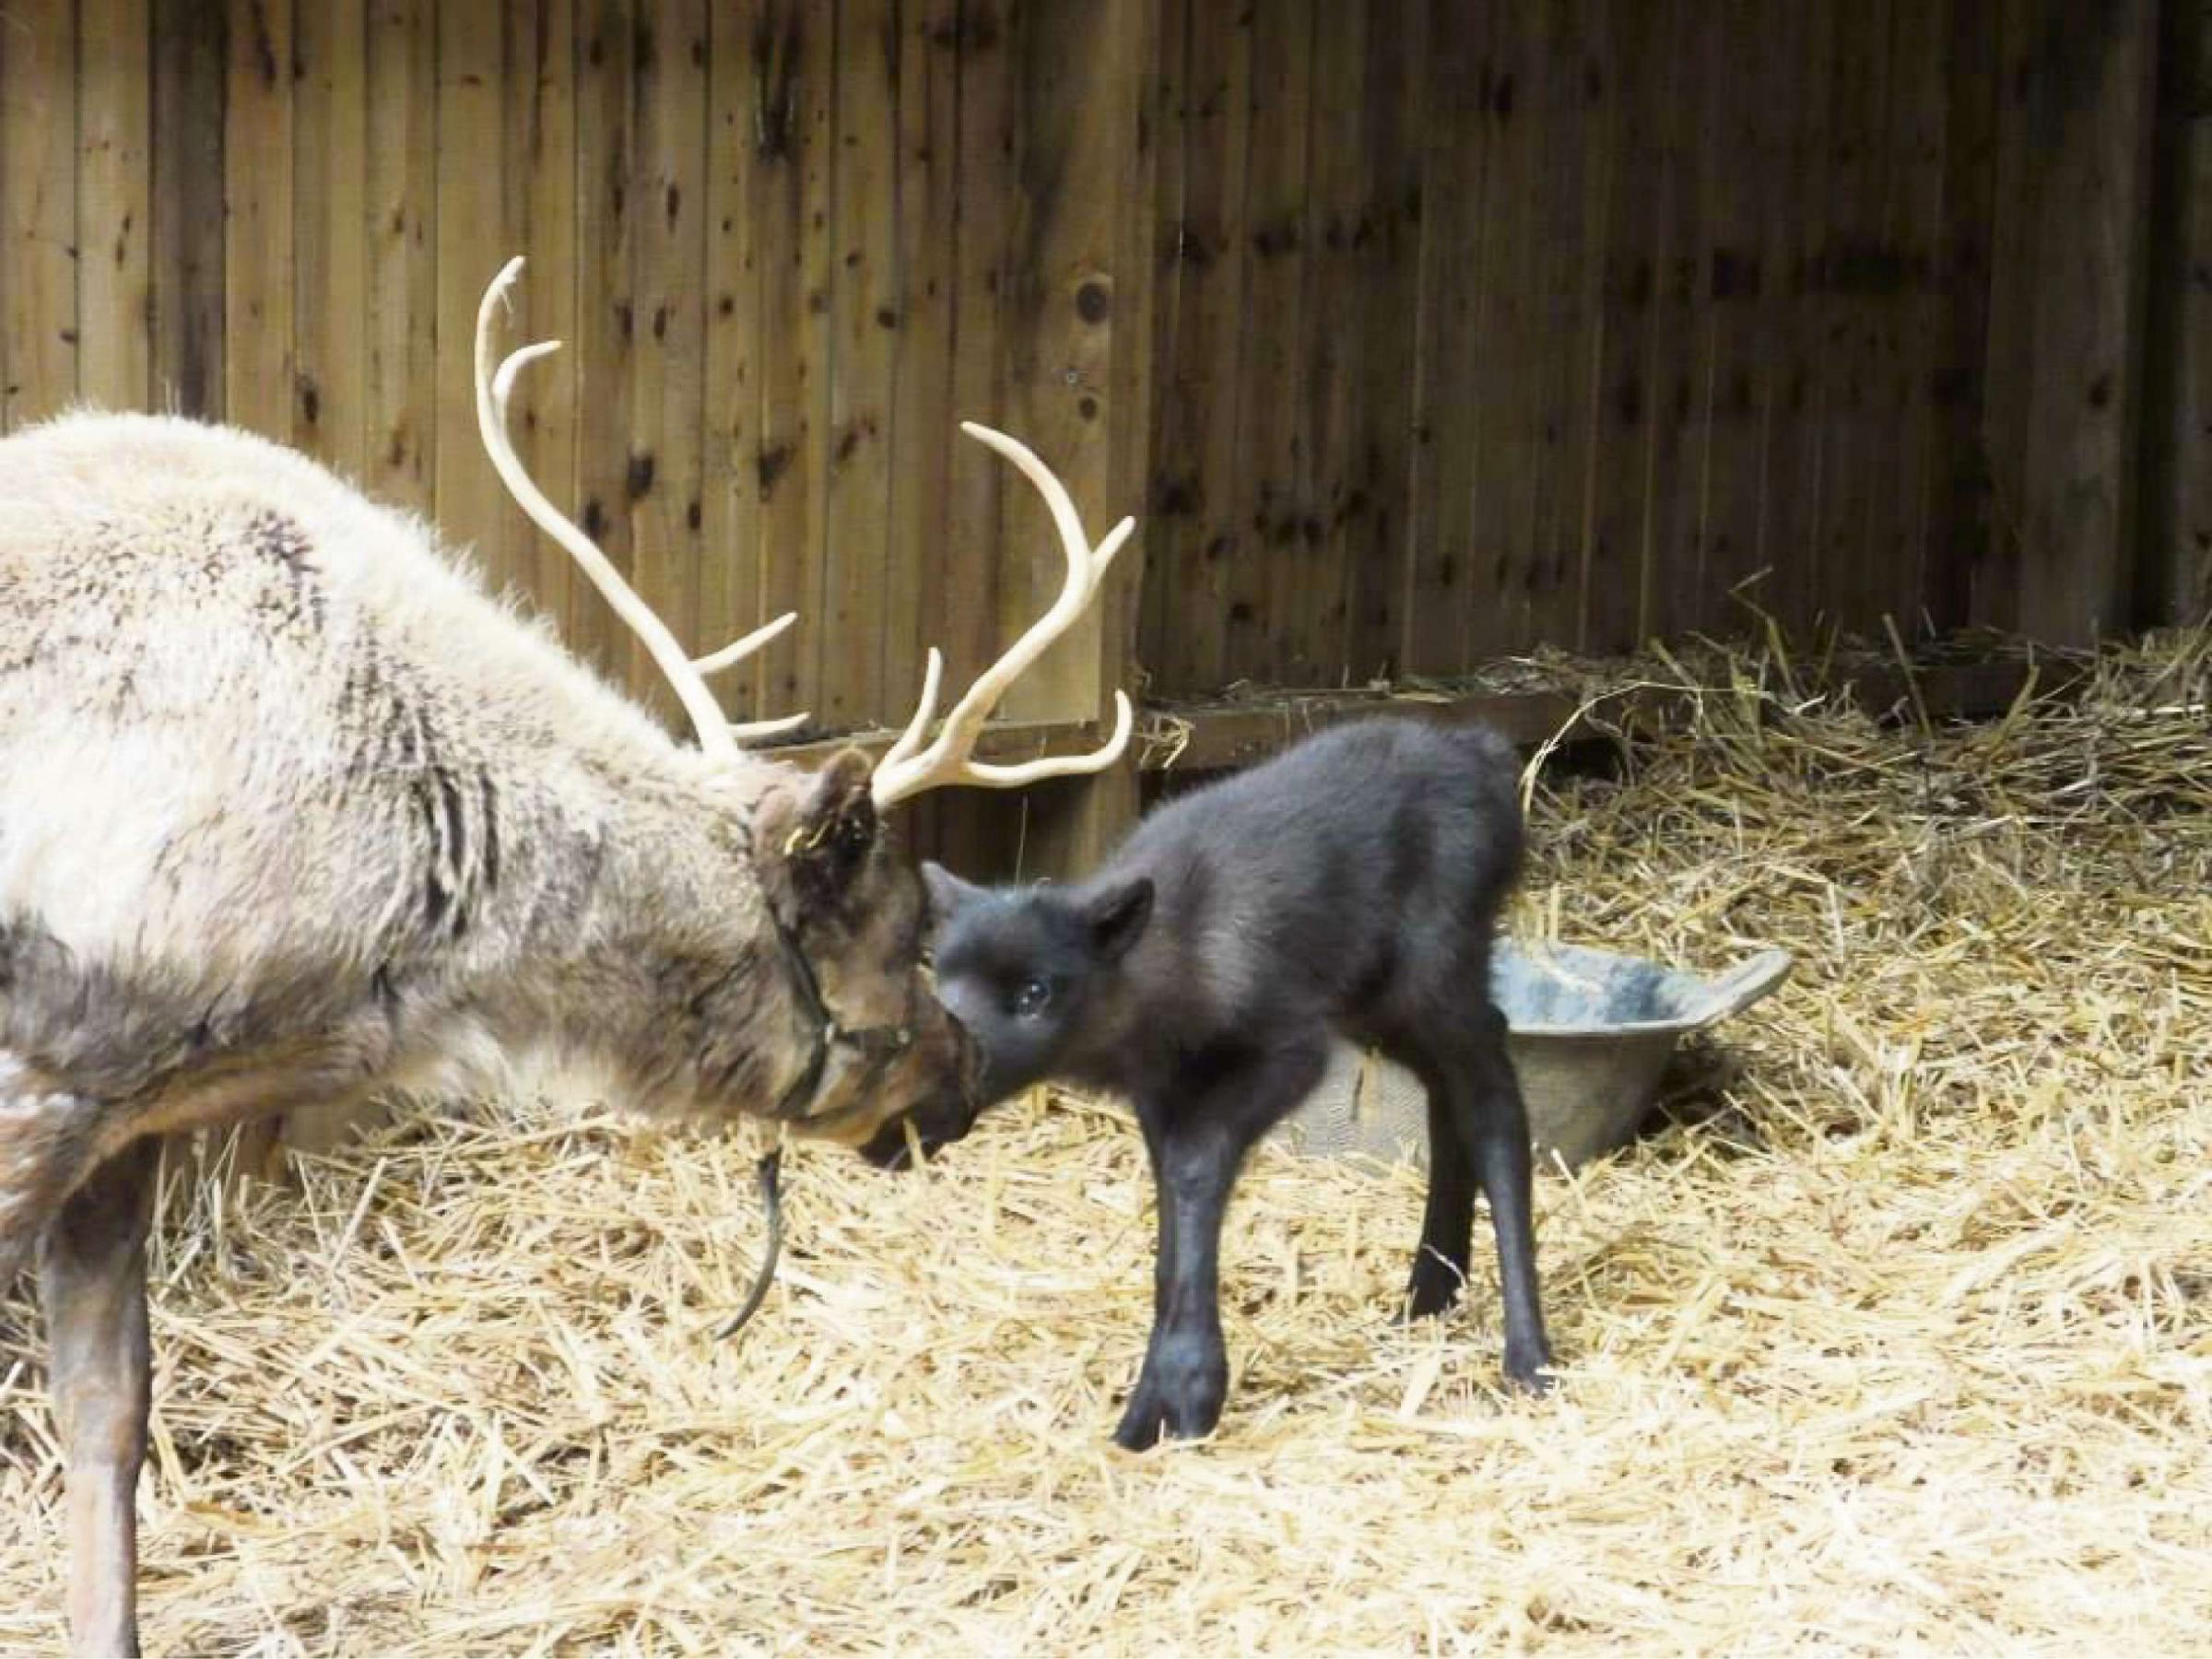 Christmas has come with spring as baby reindeer is born